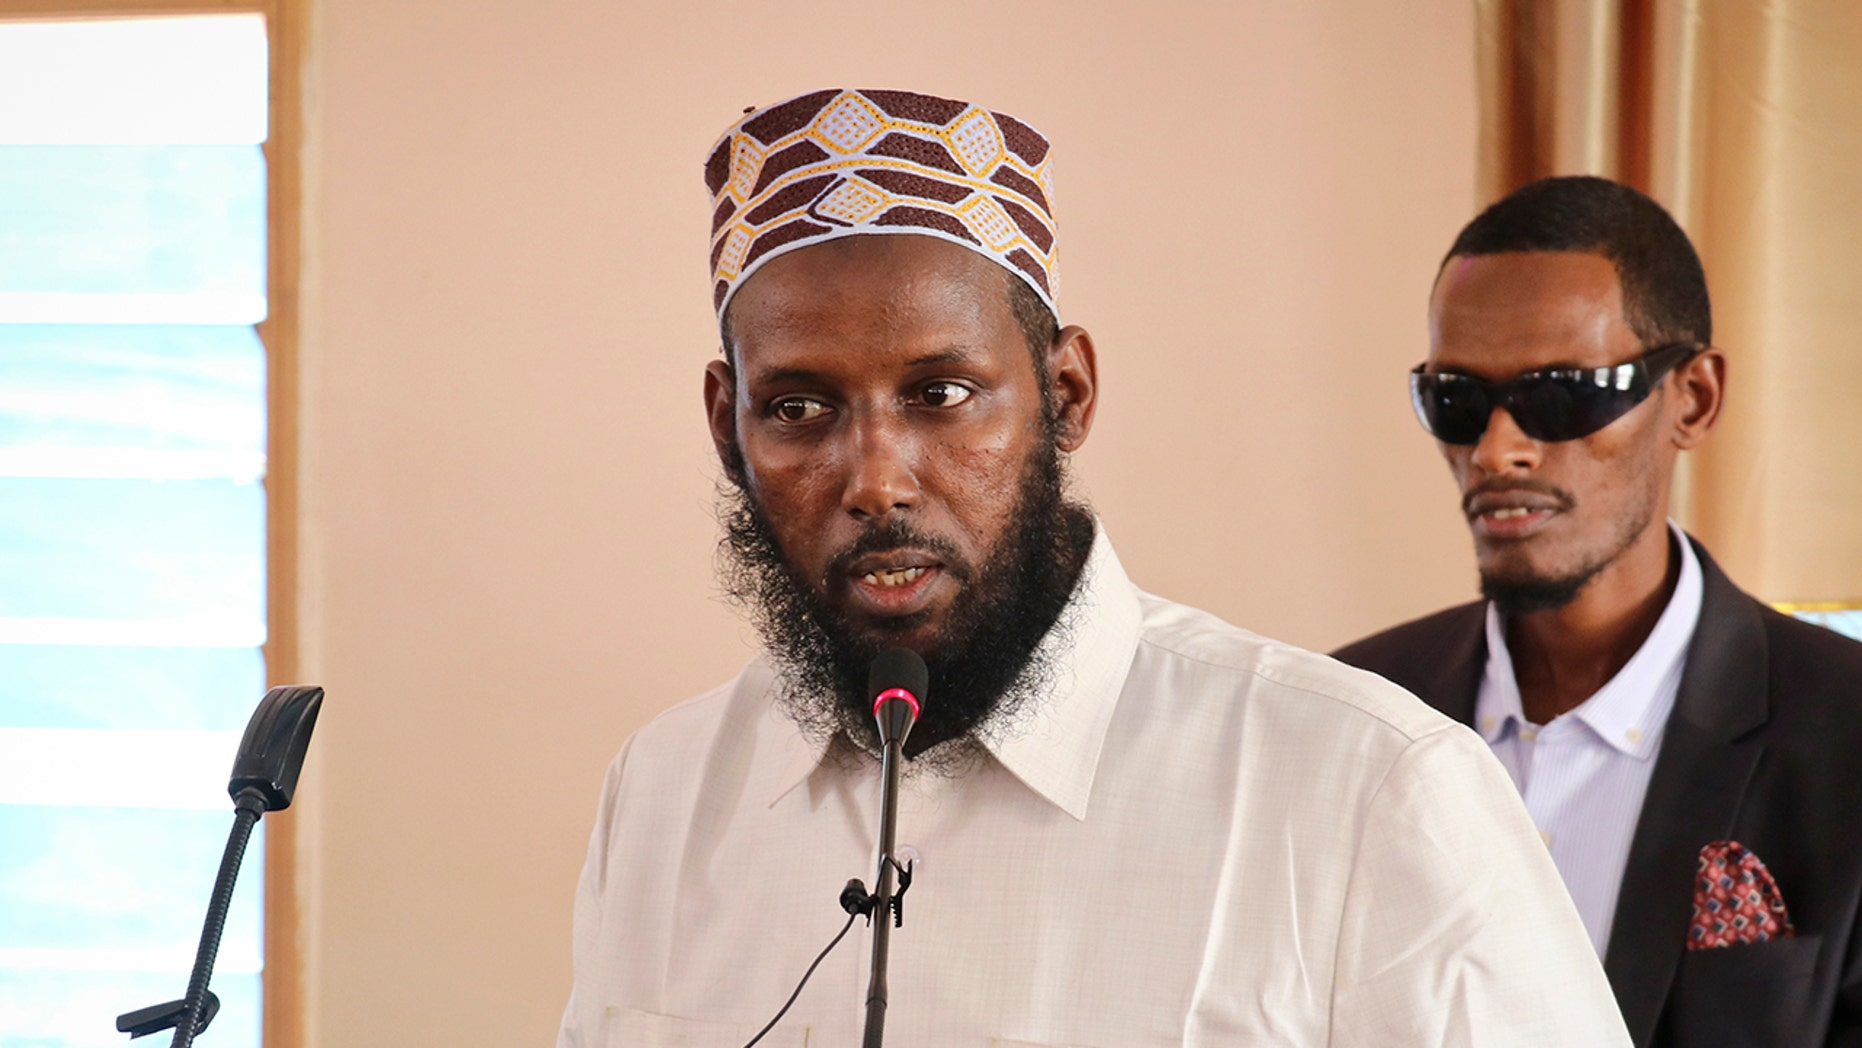 Mukhtar Robow, who was once deputy leader of Africa's deadliest Islamic extremist group the al-Qaida-linked al-Shabab, was arrested and beaten, sparking violent protests that left at least four dead. (AP Photo/File)